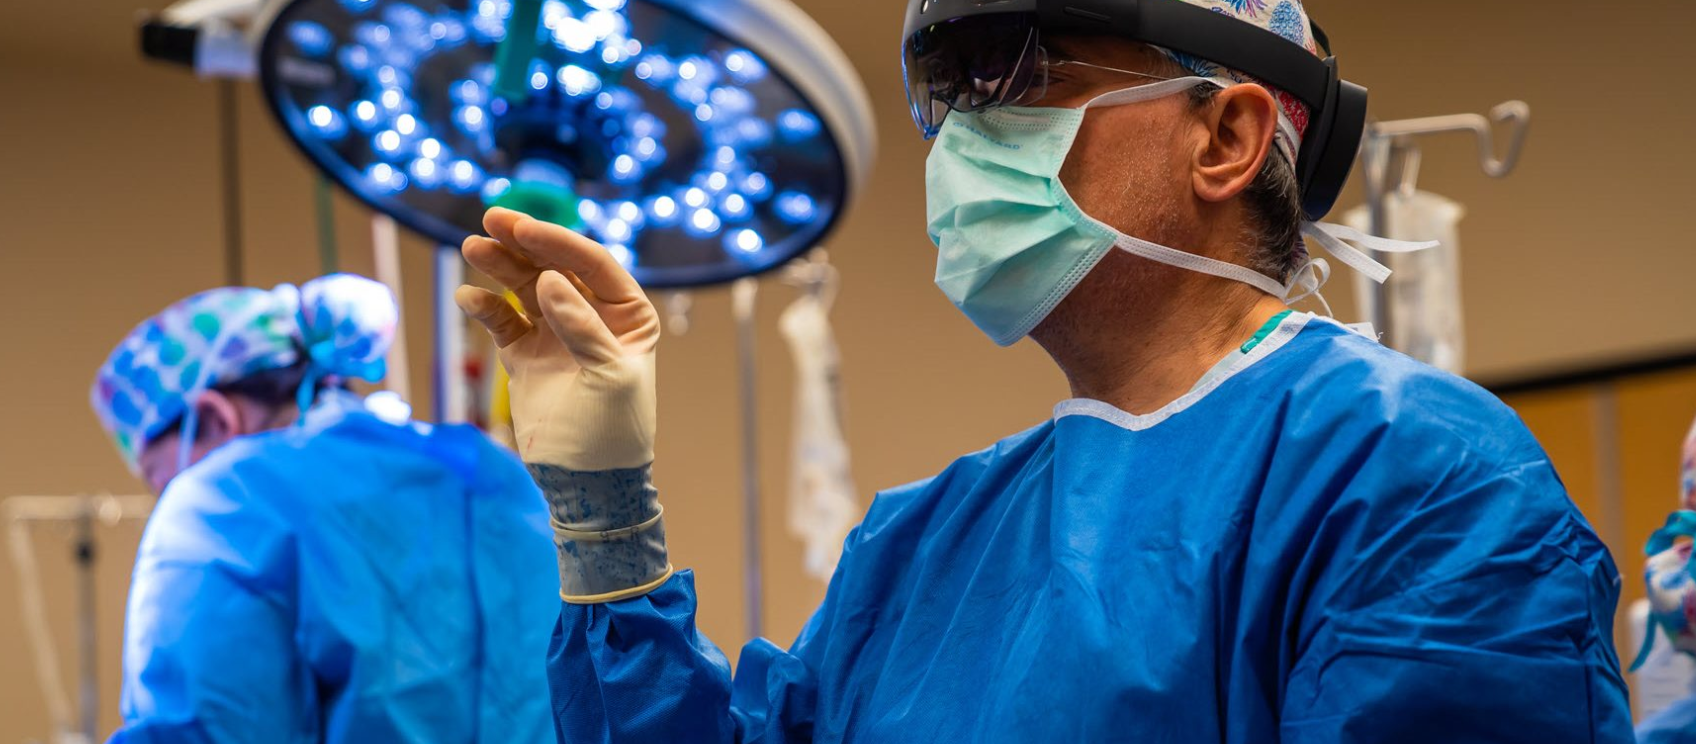 image of orthopedic surgeon Dr. John Sledge using HoloLens 2 headset during a spinal fusion surgery